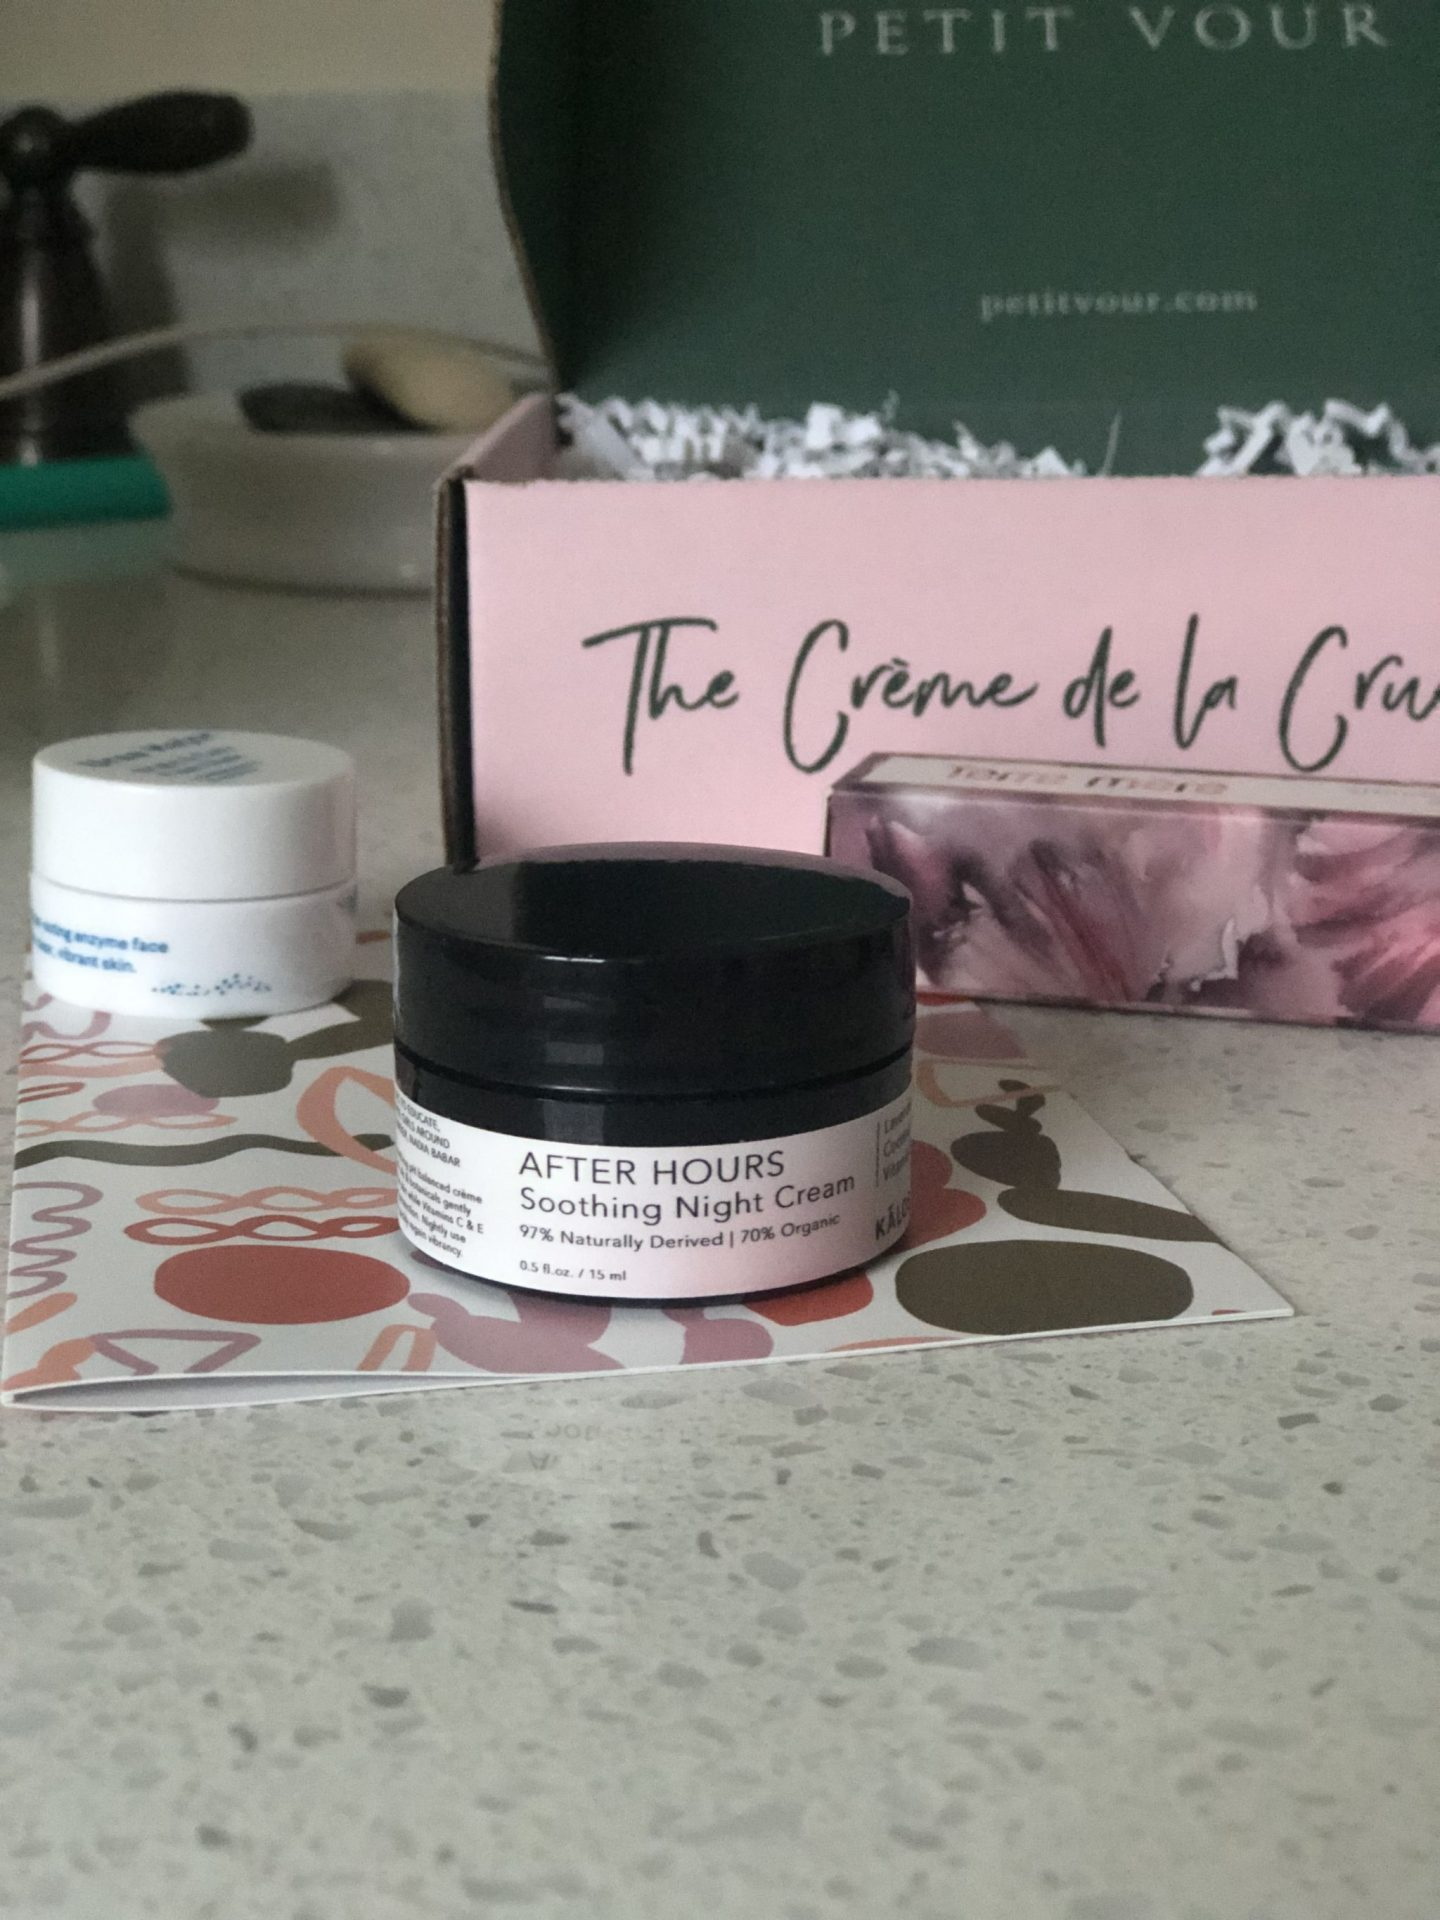 NC blogger Rebecca Lately shares her Petit Vour July 2019 box. This is a natural, organic, and cruelty free beauty box that helps you discover new brands!